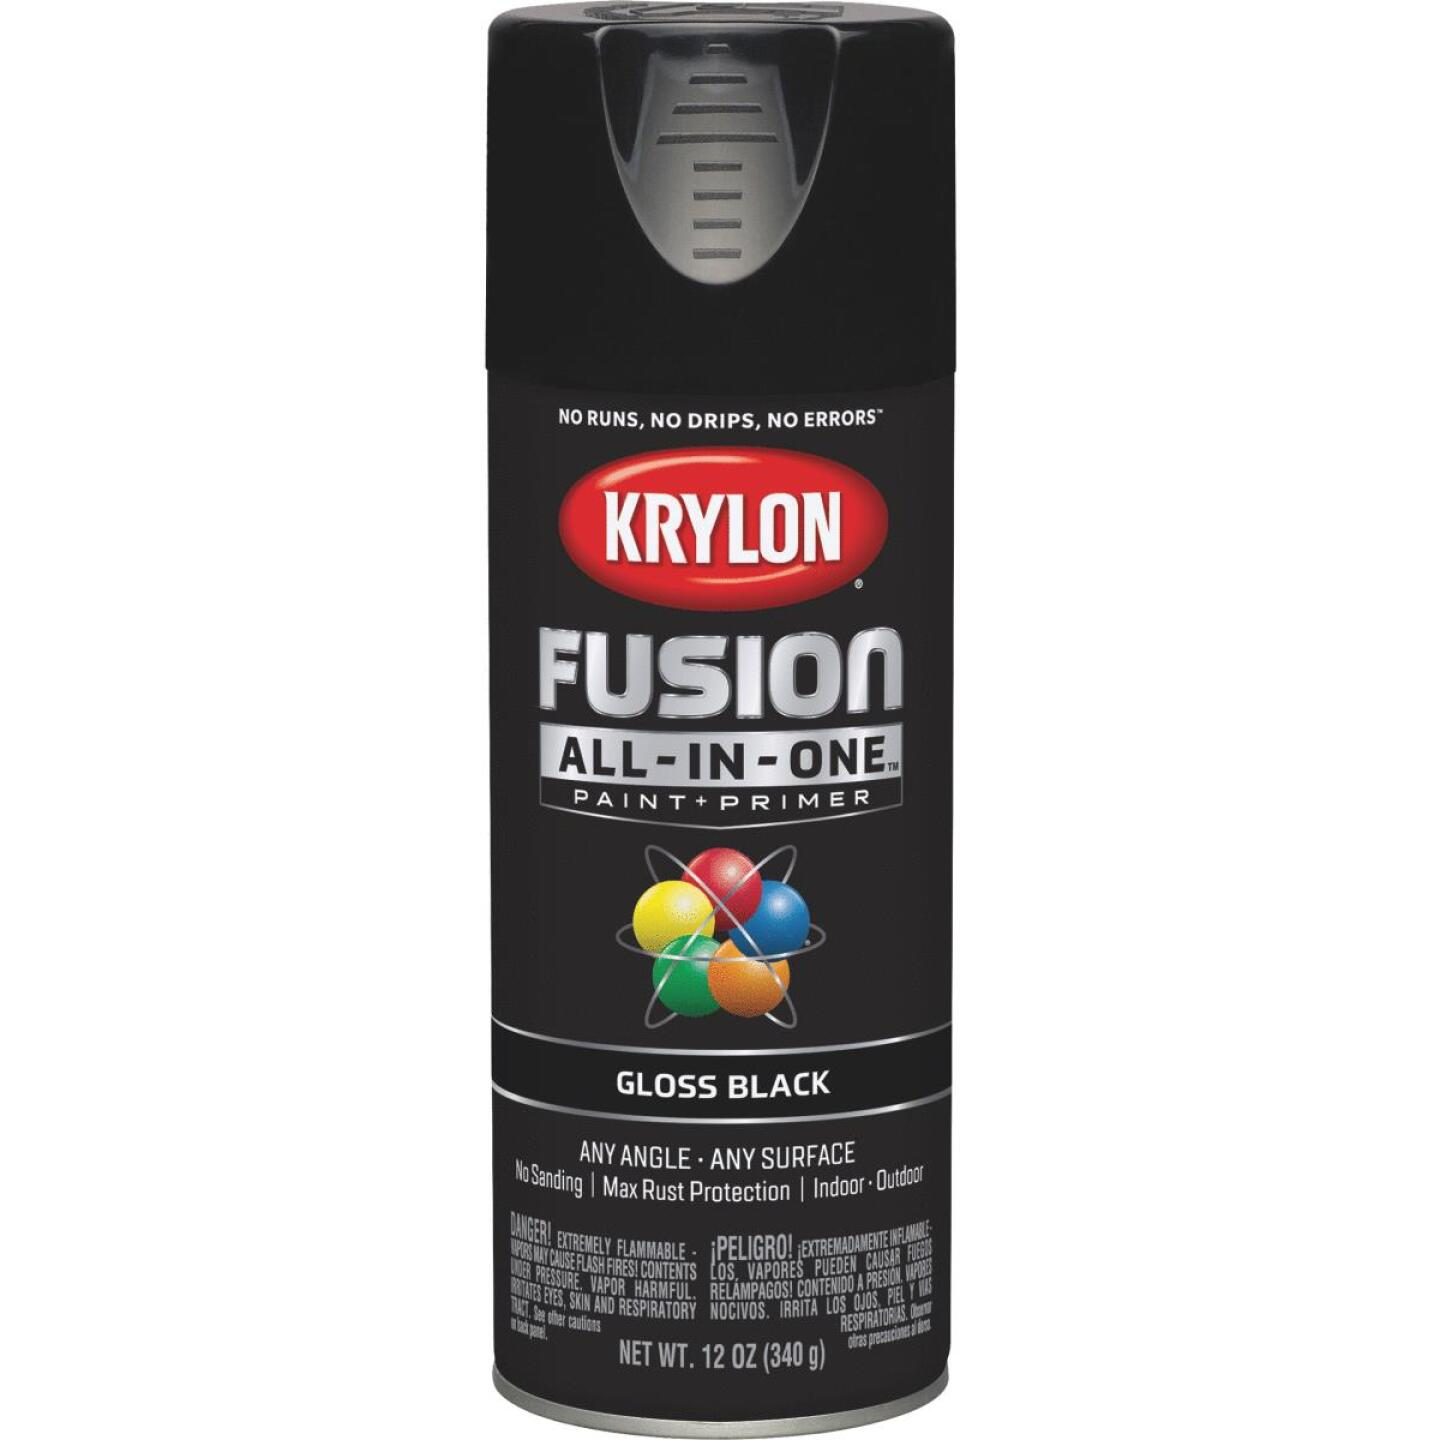 Krylon Fusion All-In-One Gloss Spray Paint & Primer, Black Image 1